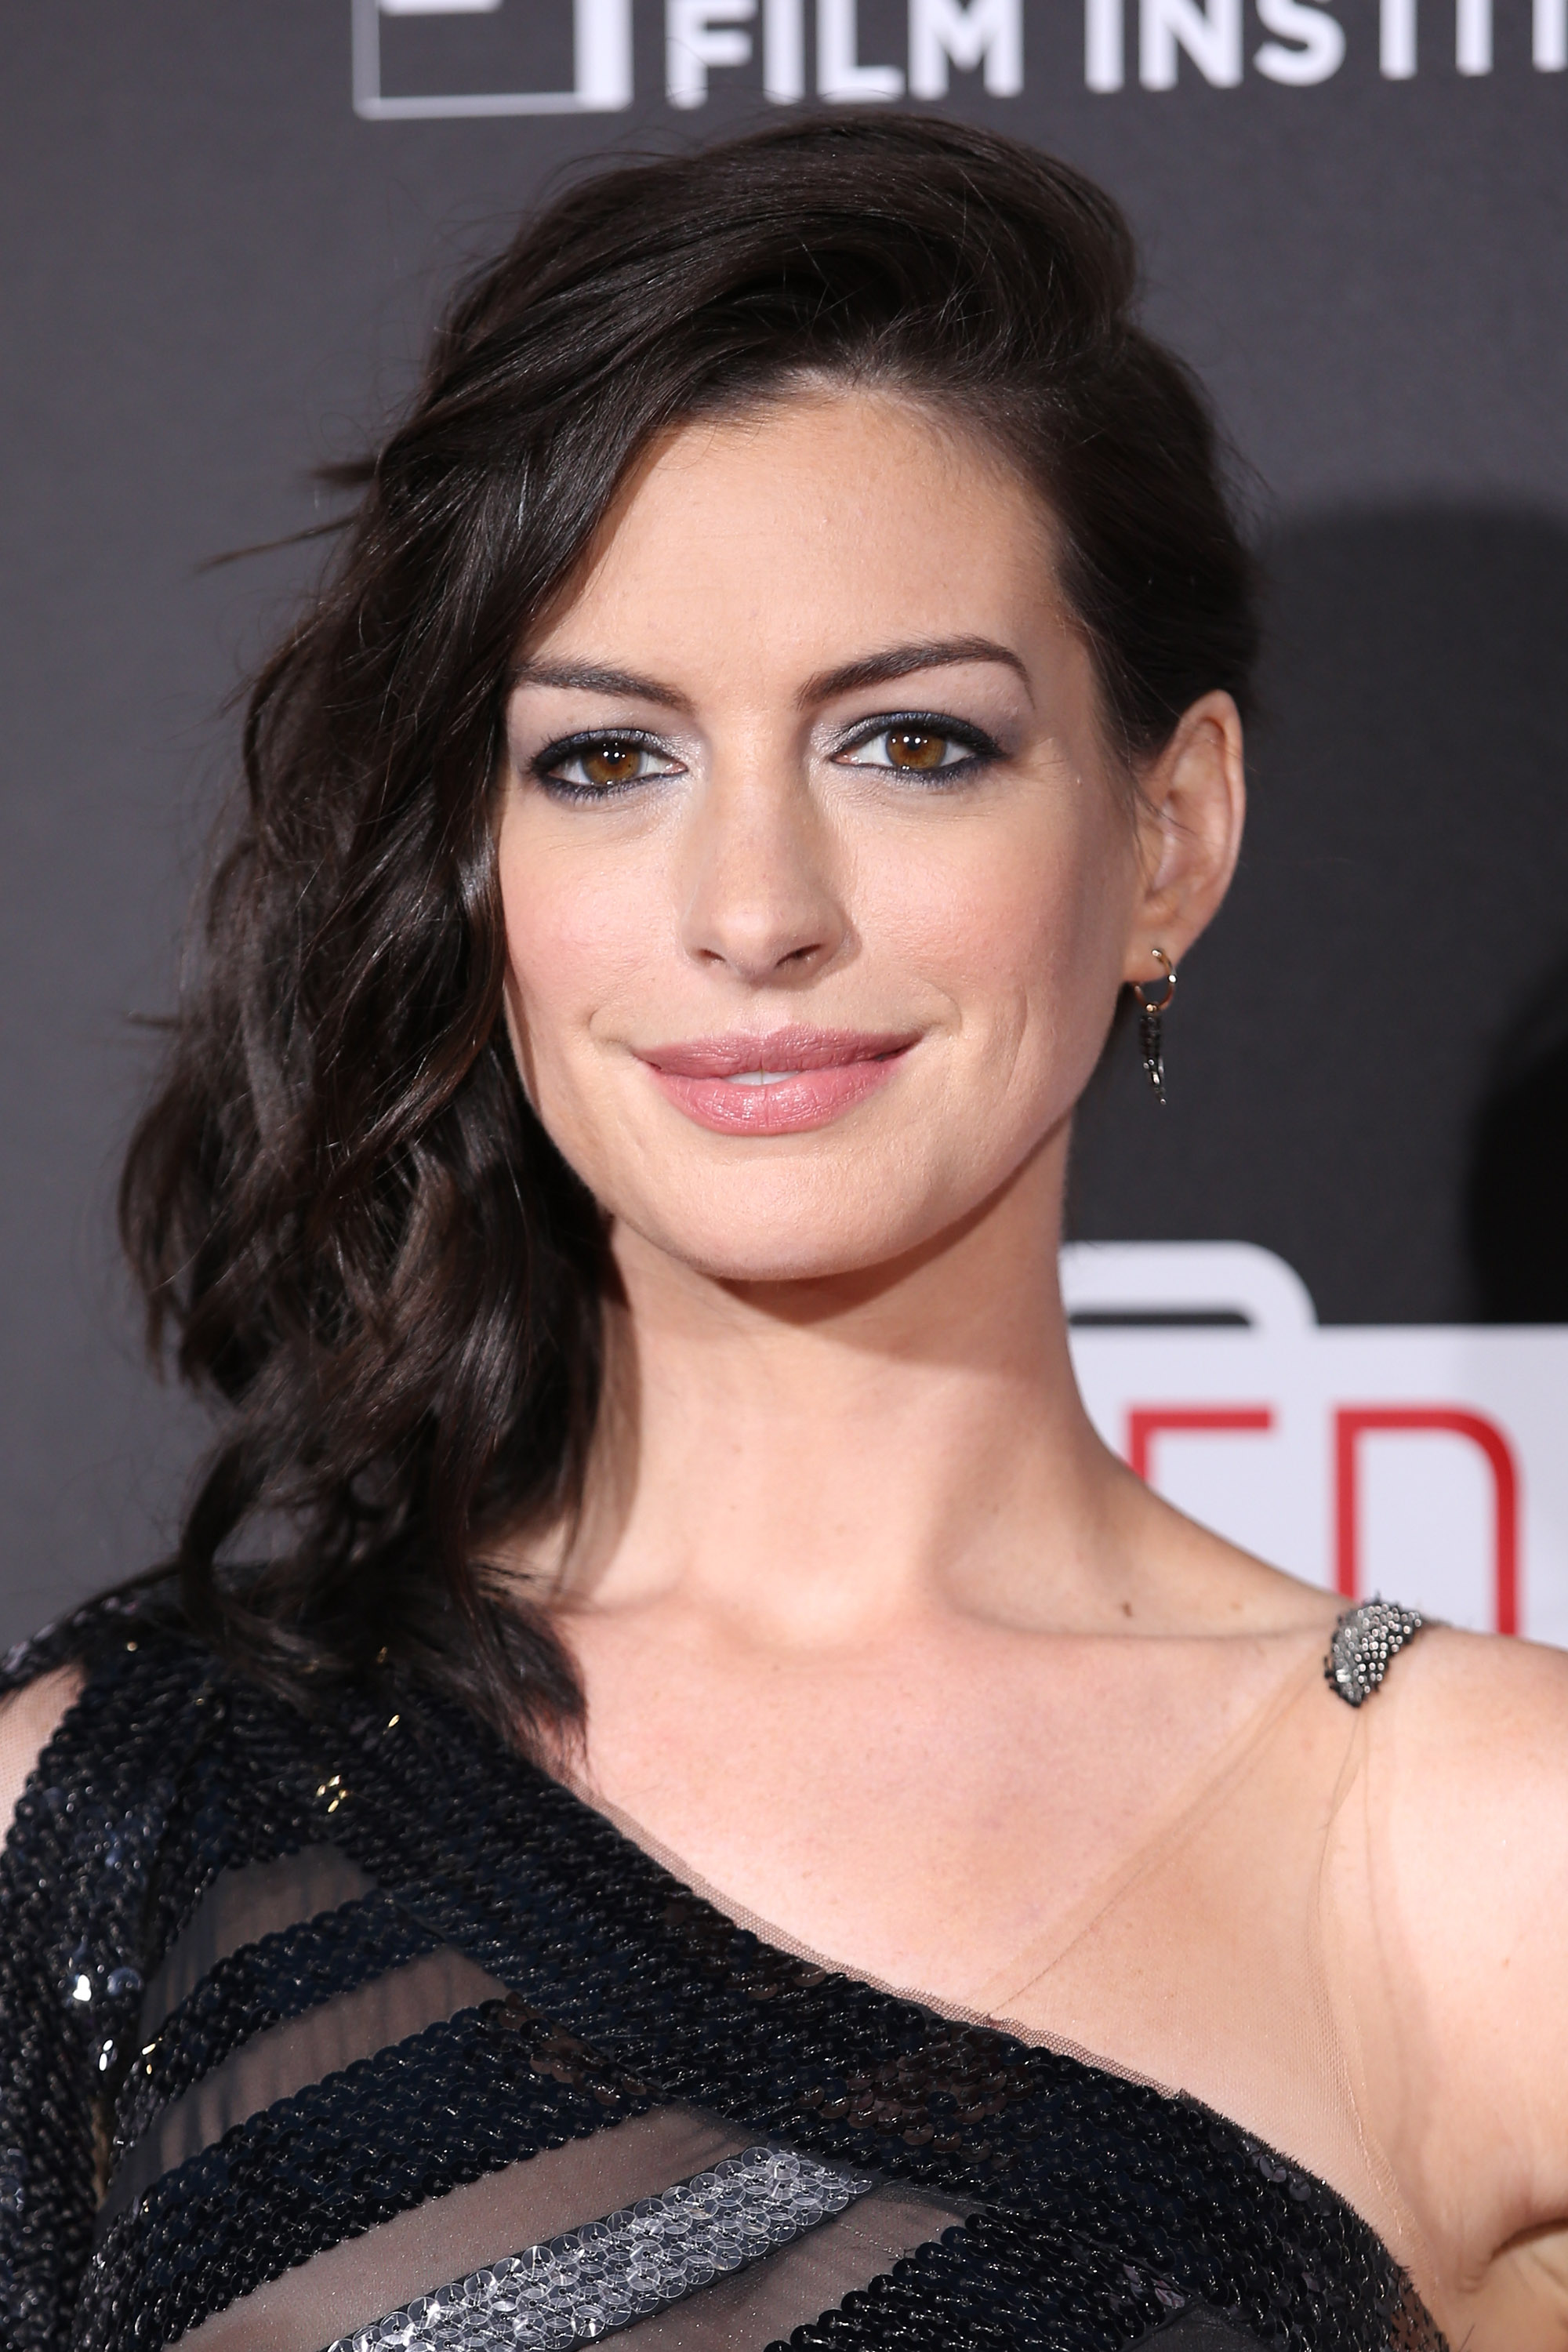 Product Spotlight: Get Anne Hathaway's Lipstick